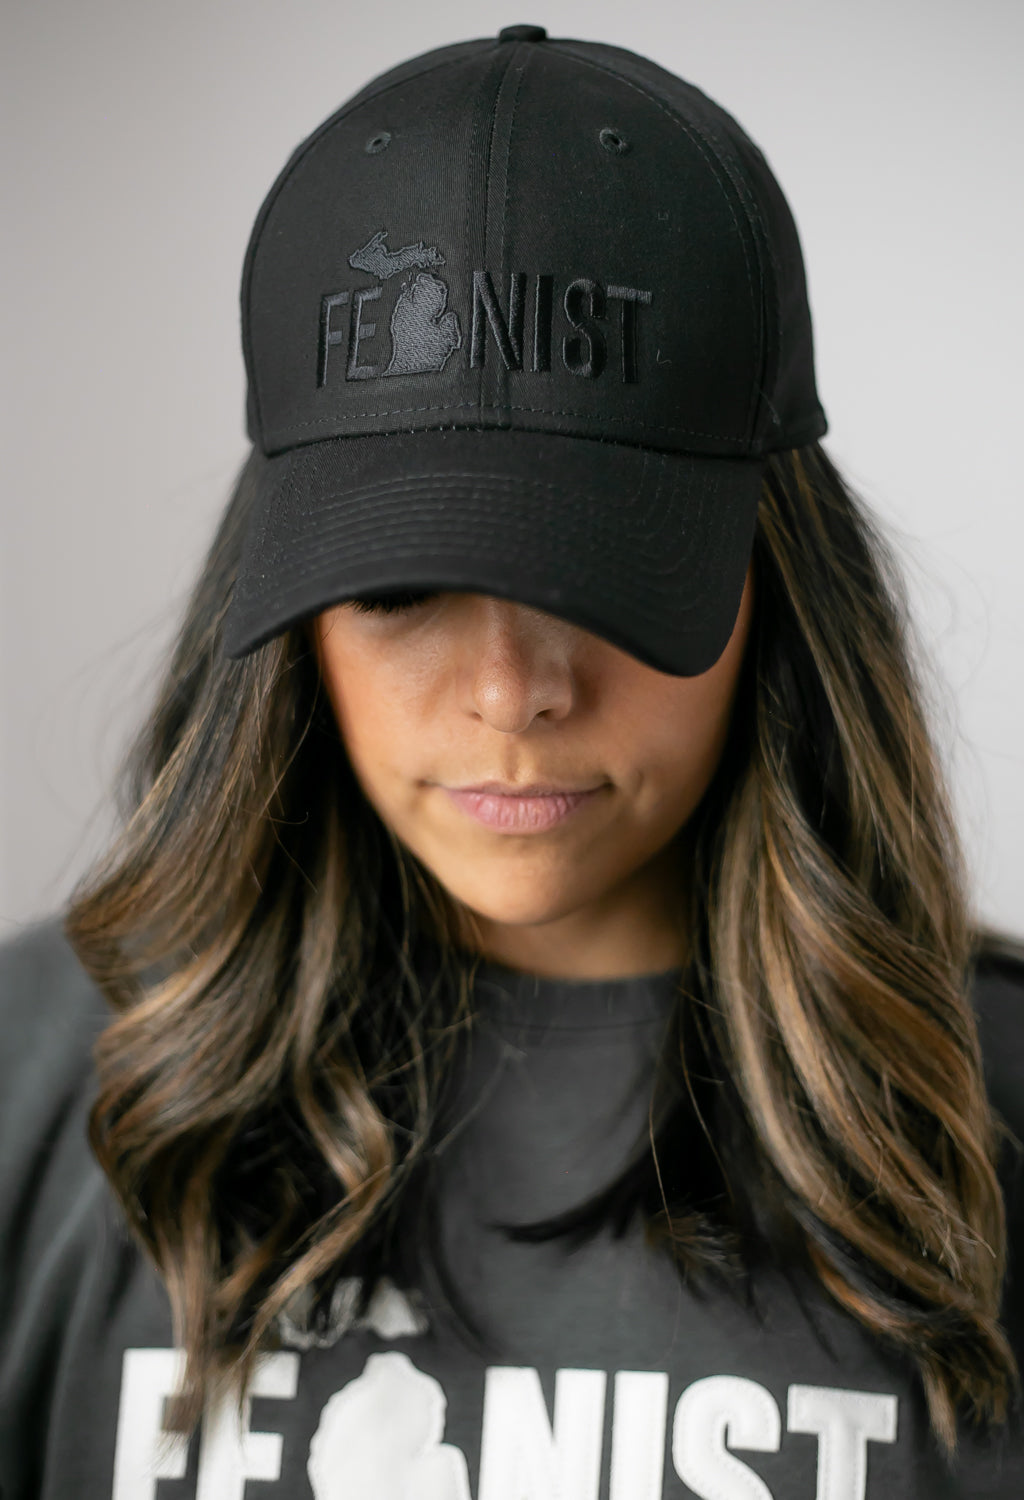 Michigan Feminist Black on Black Hat